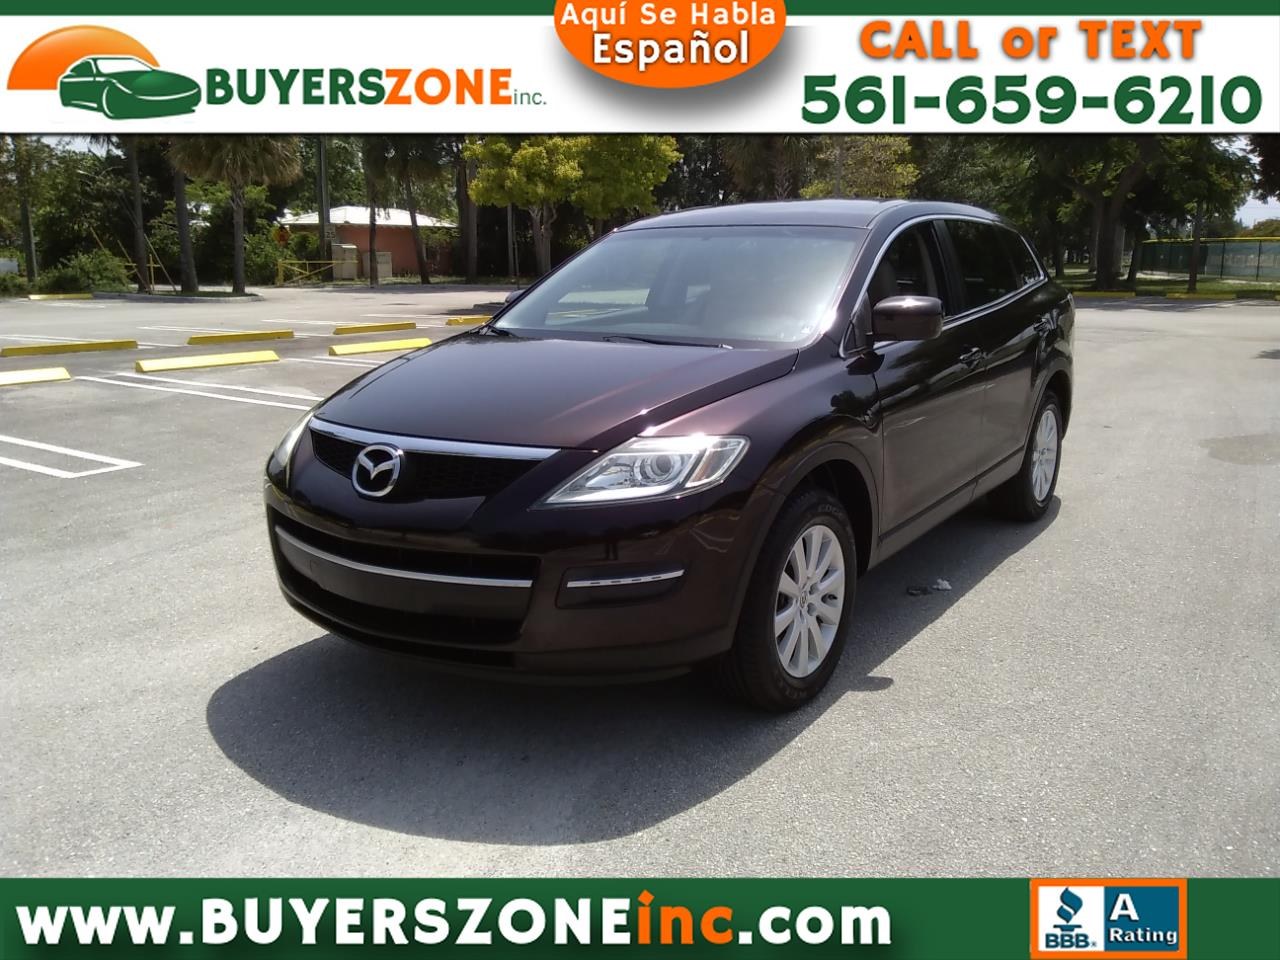 2008 Mazda CX-9 FWD 4dr Touring